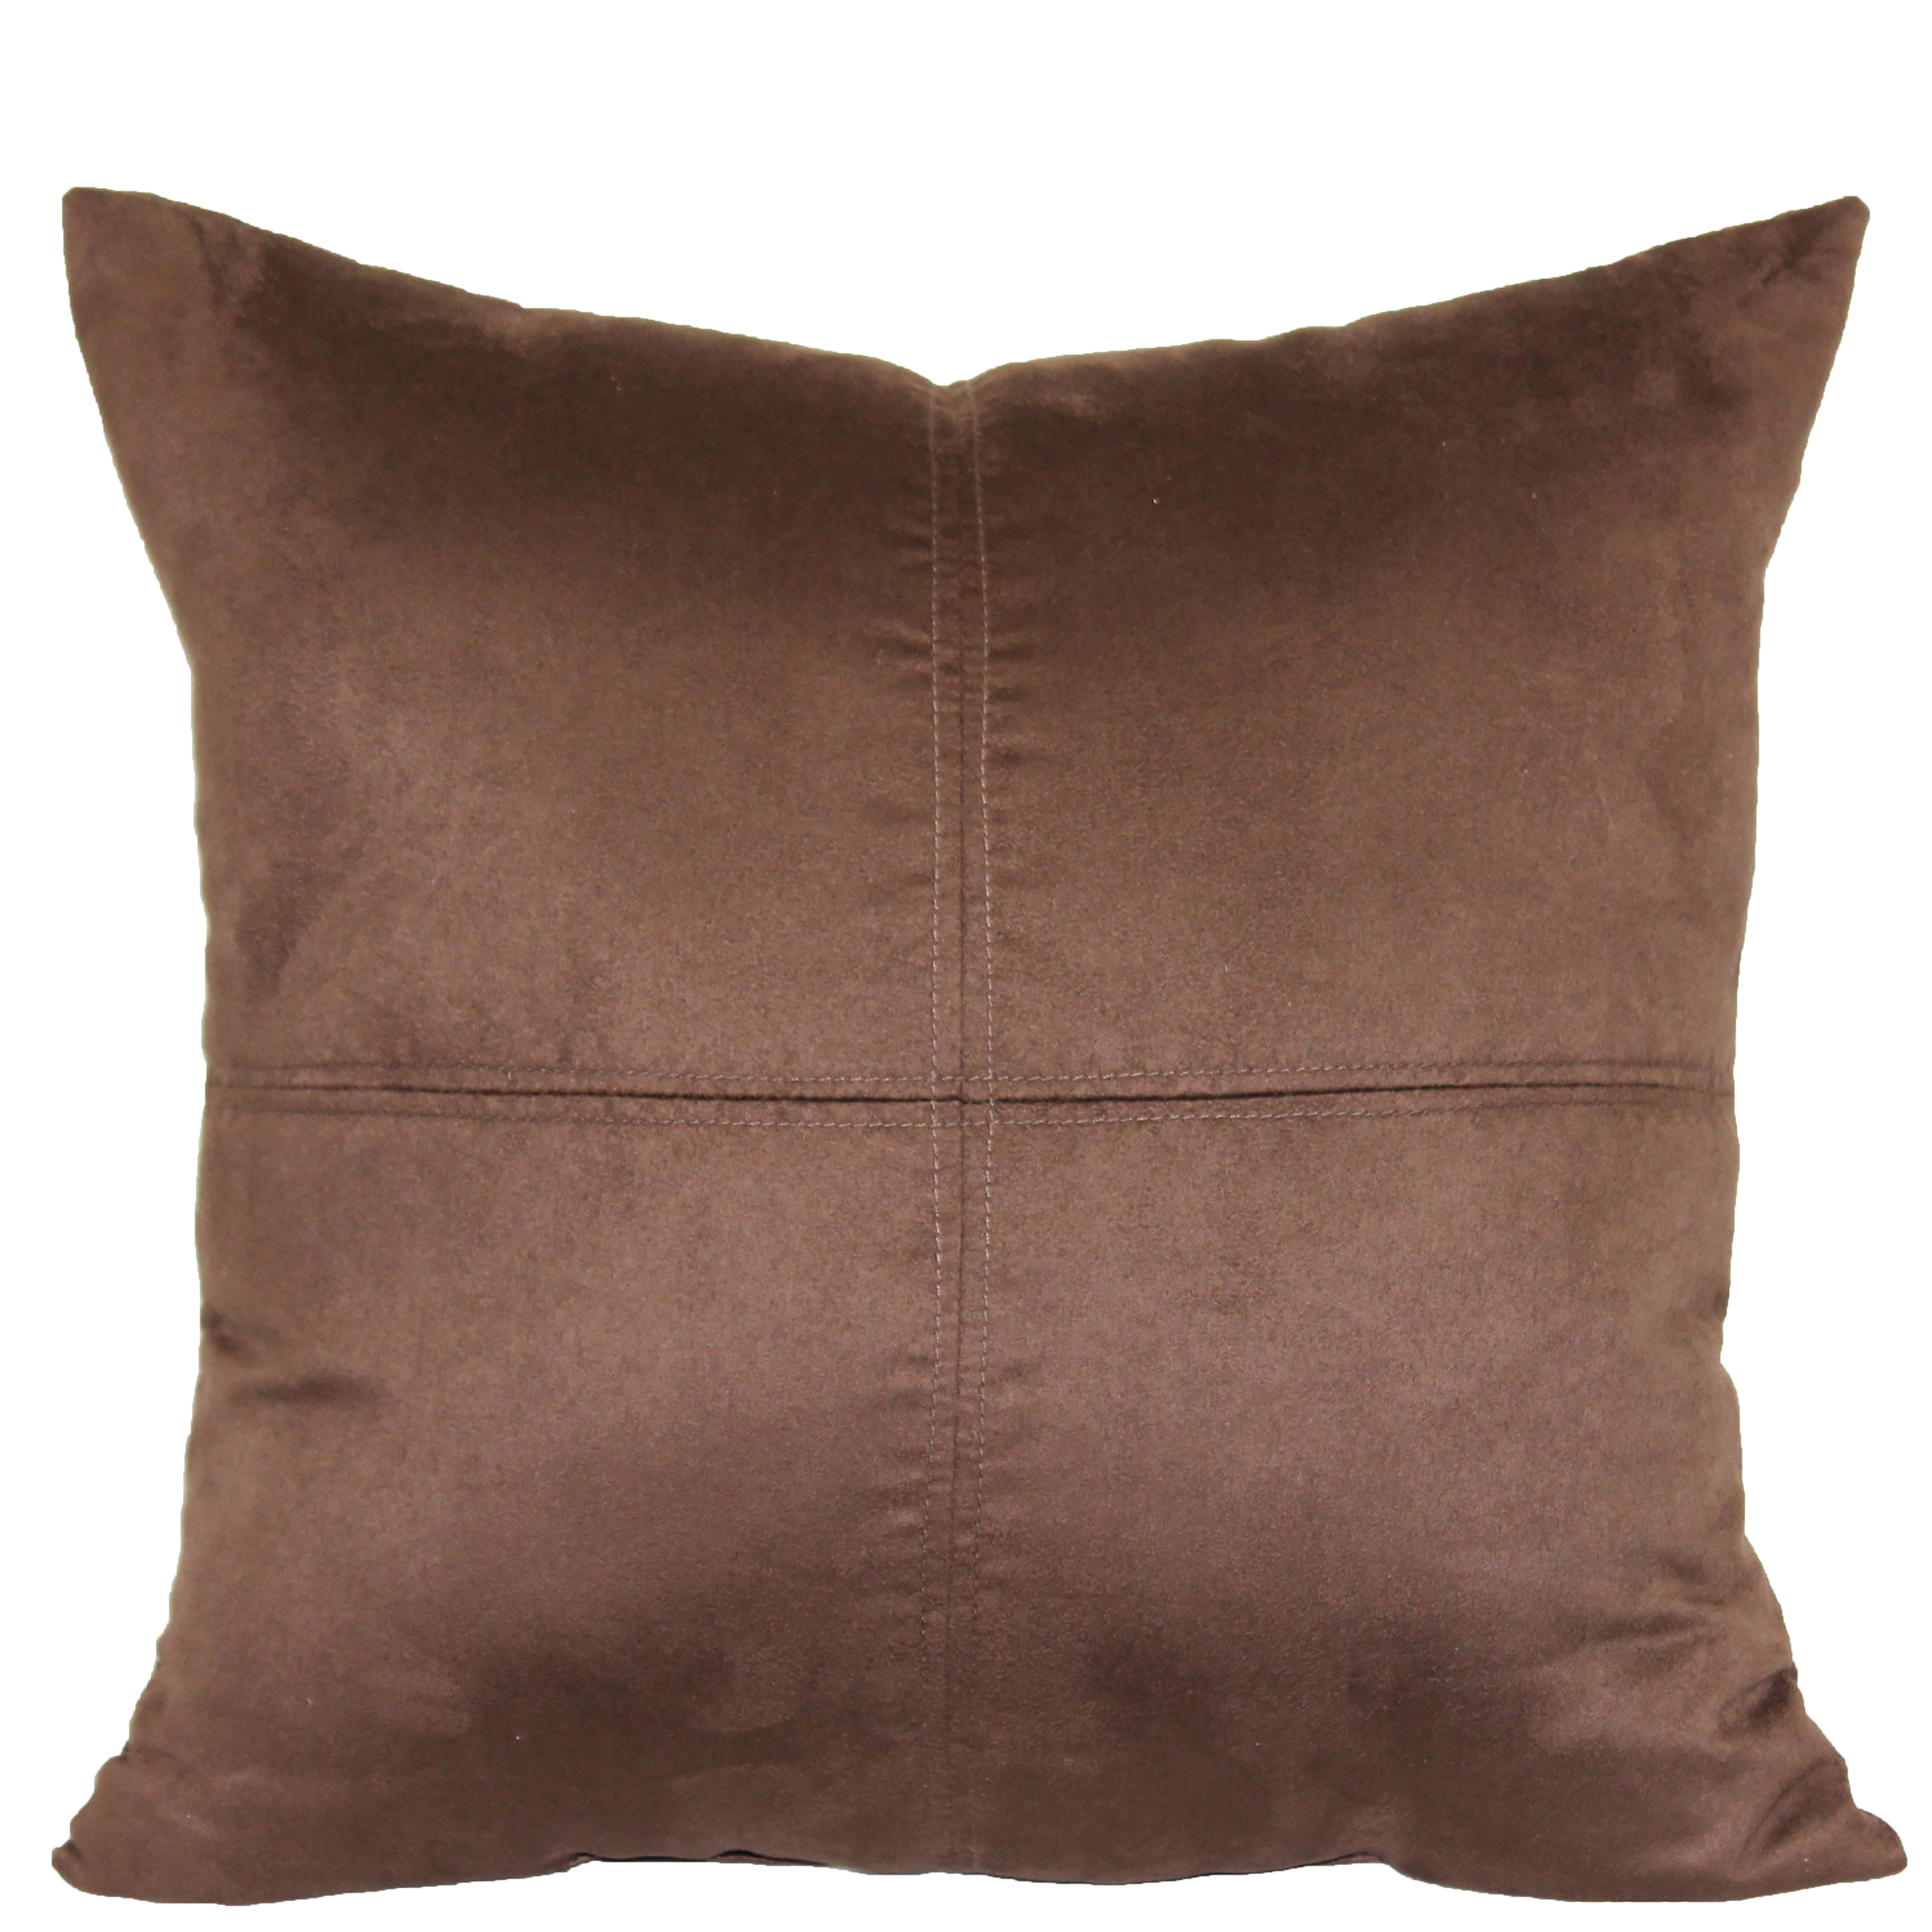 "Mainstays 4-Panel Suede Decorative Throw Pillow, 17"" x 17"", Brownstone"